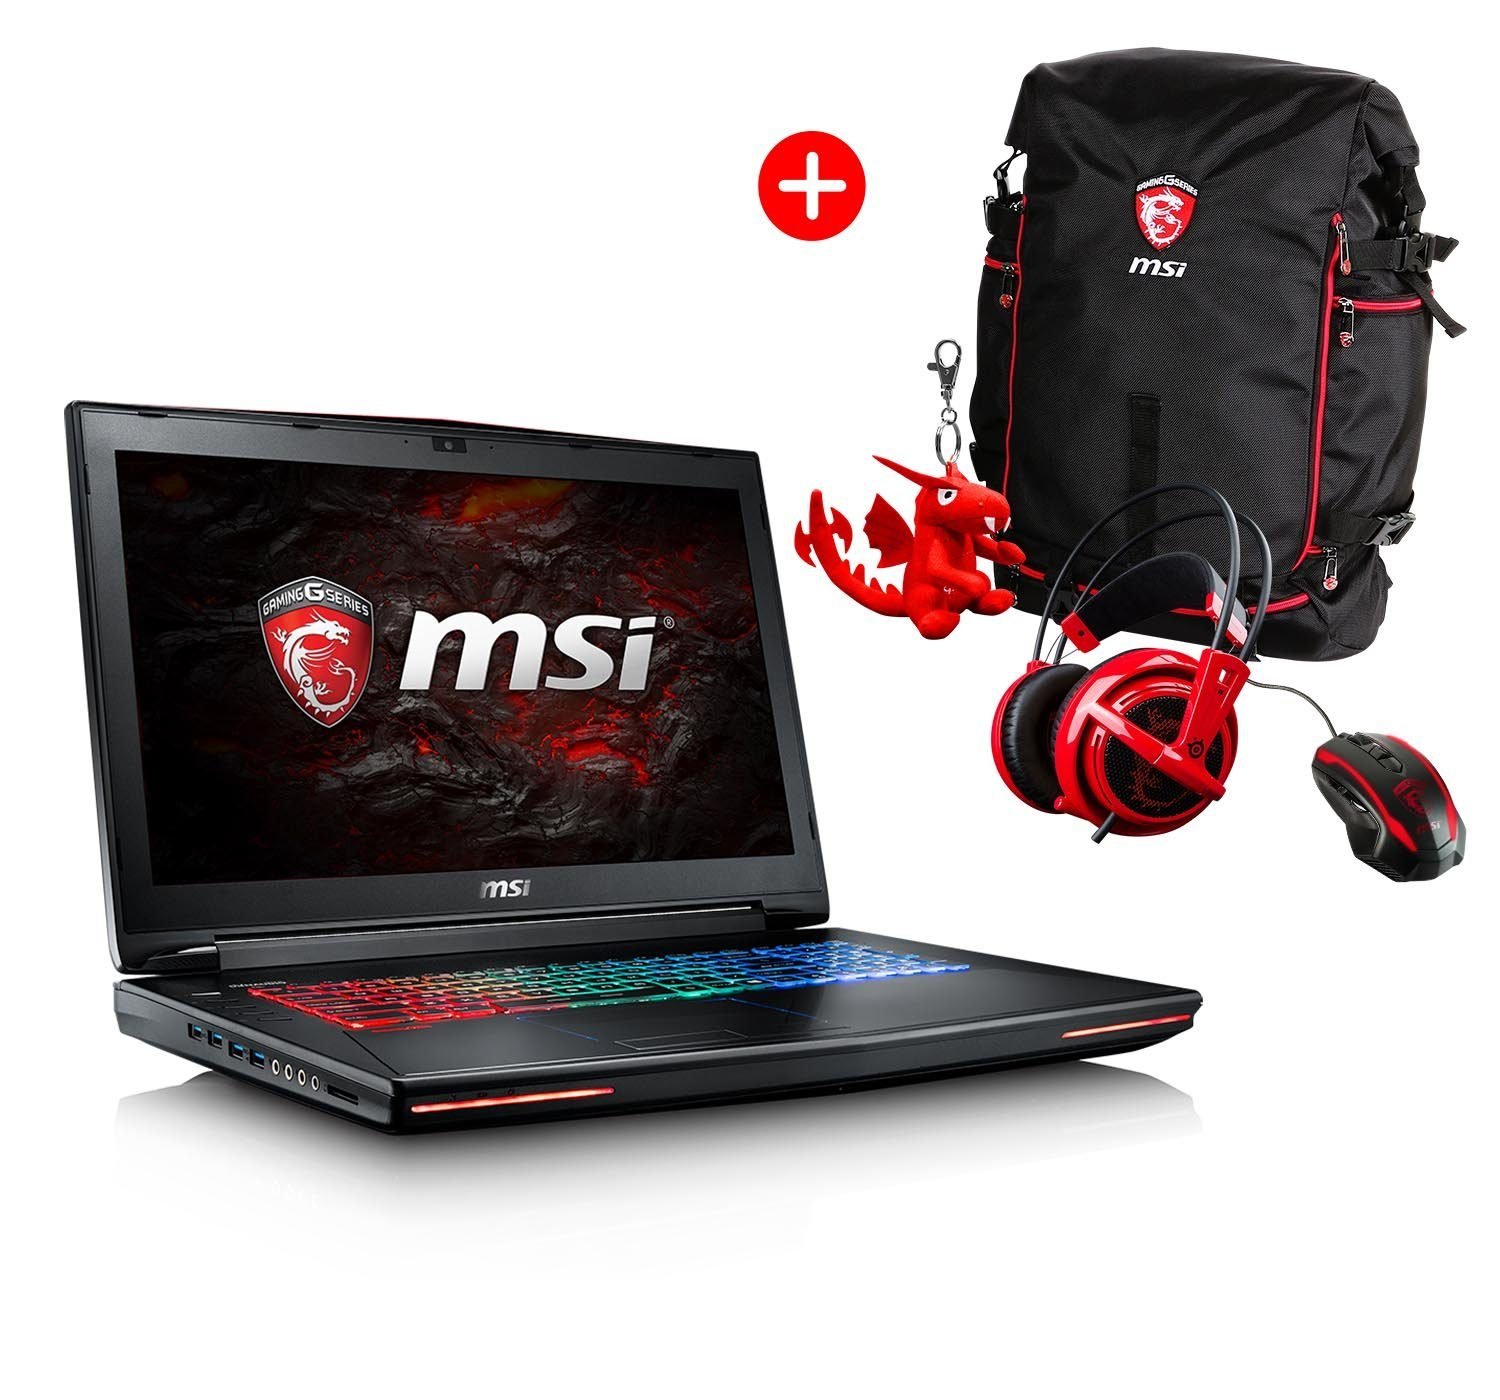 "MSI 17,3"", i7-6700HQ, 16GB RAM, SSD + HDD, GeForce® GTX 1070 »GT72VR-6REAC16H51 (001785-SKU36)«"